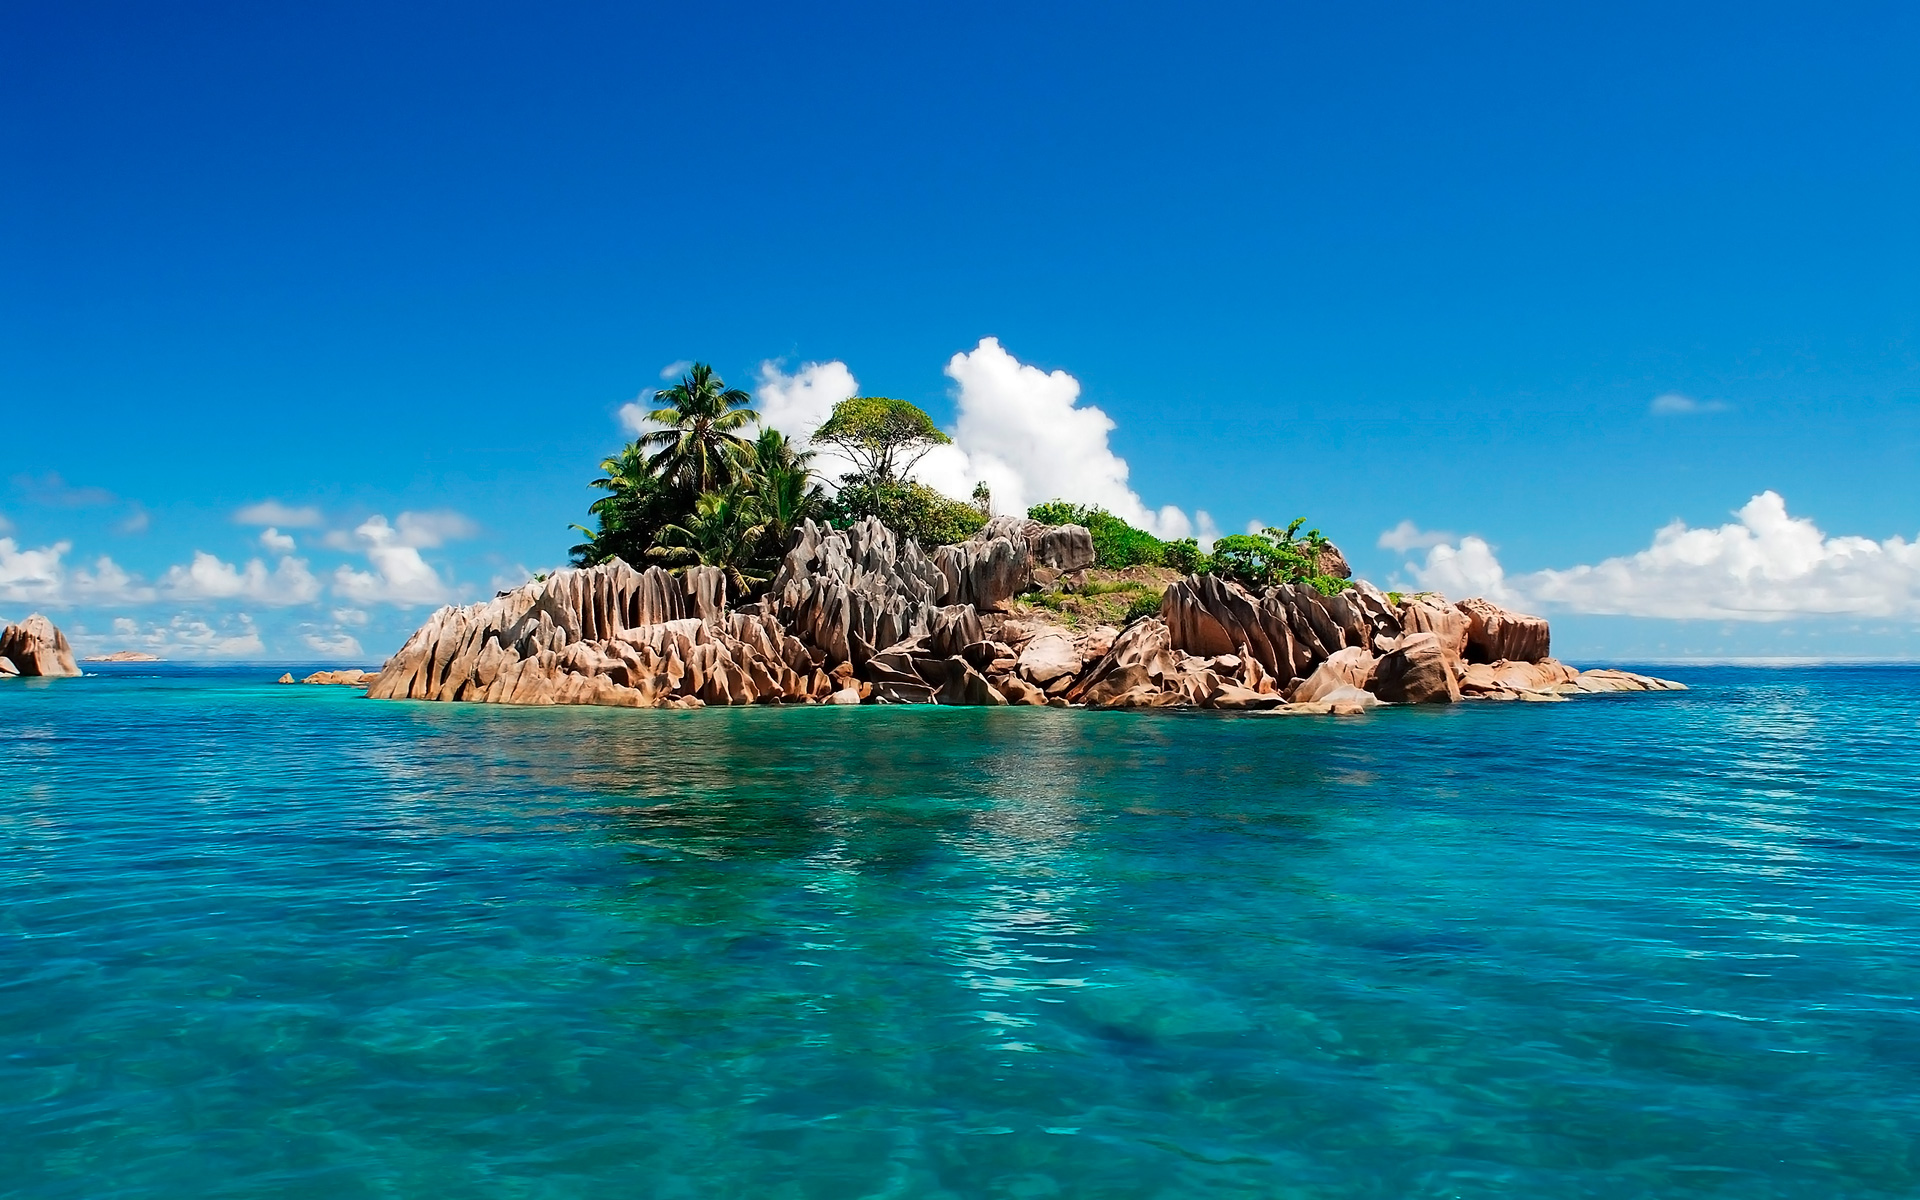 Pin Free Wallpapers Island on Pinterest